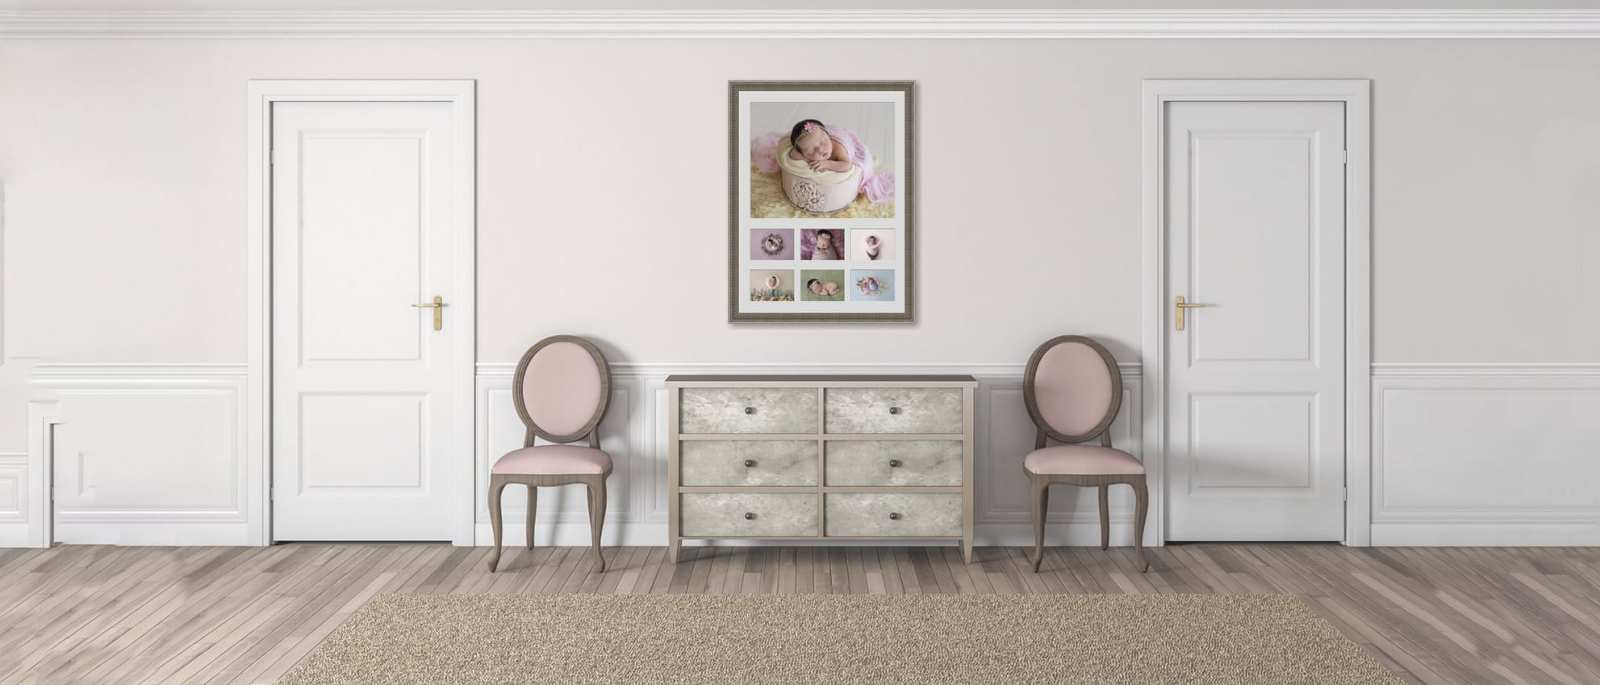 Sunshine Coast Gympie Region - Premium Newborn Photographer - wall one